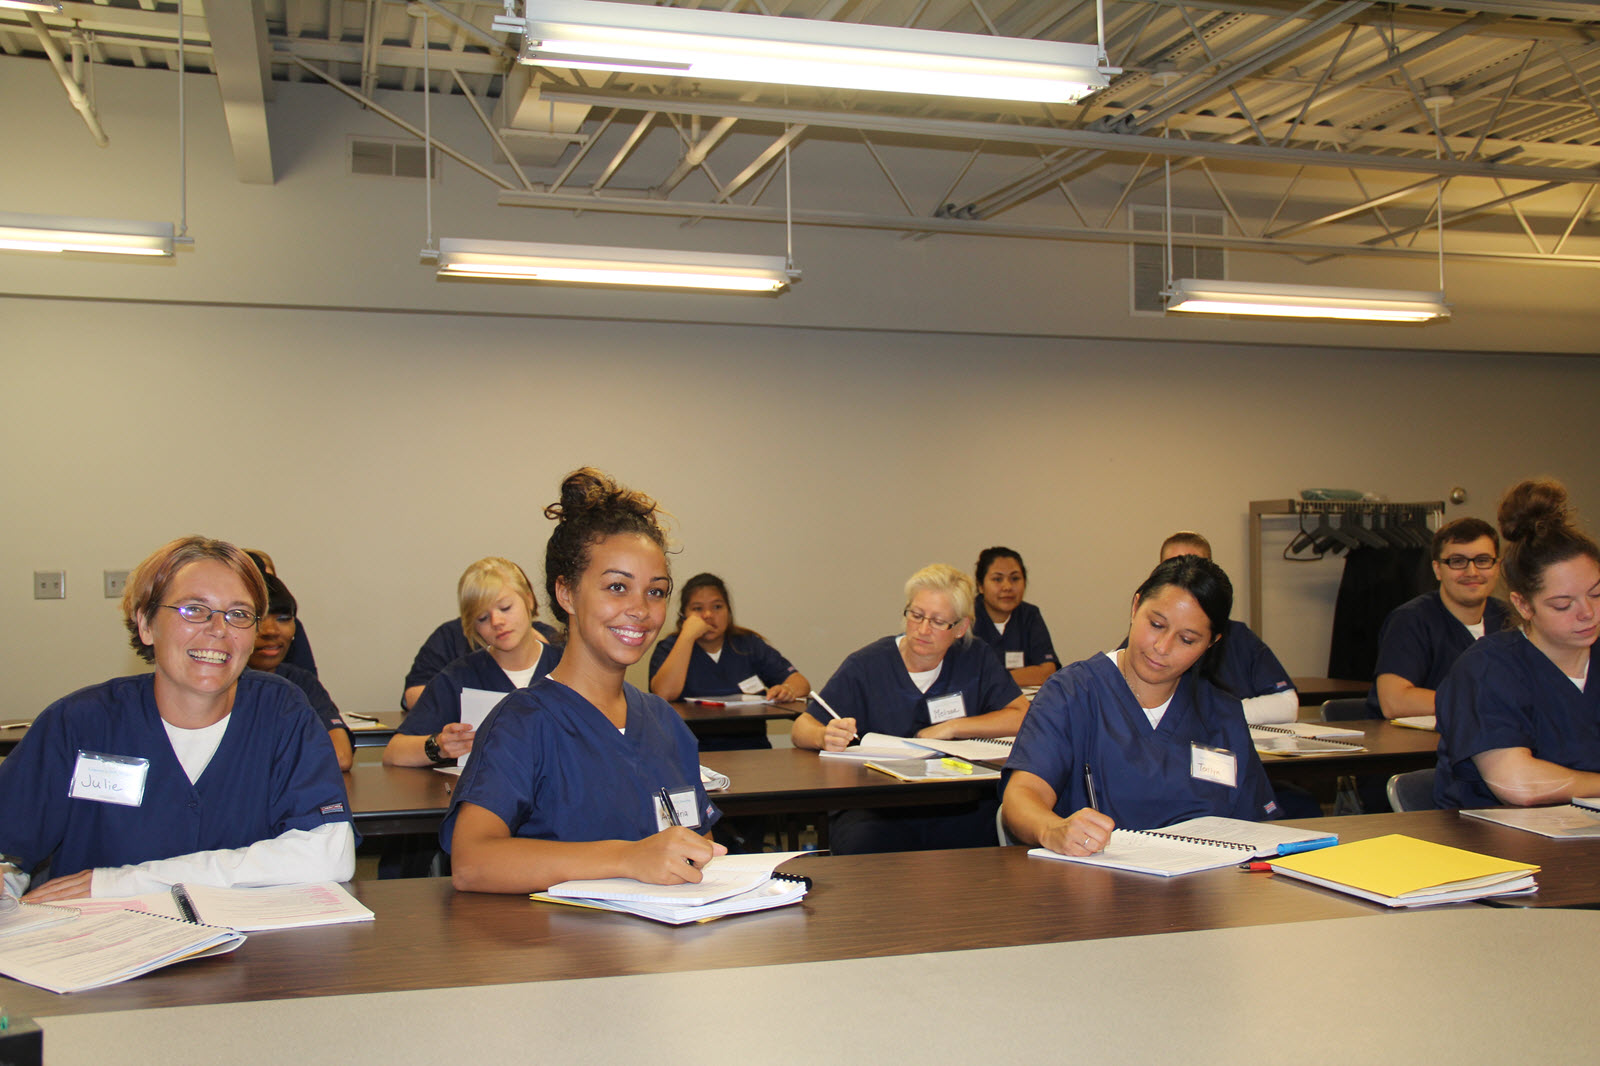 Home legacy cna training continuing a tradition of excellence home legacy cna training xflitez Choice Image